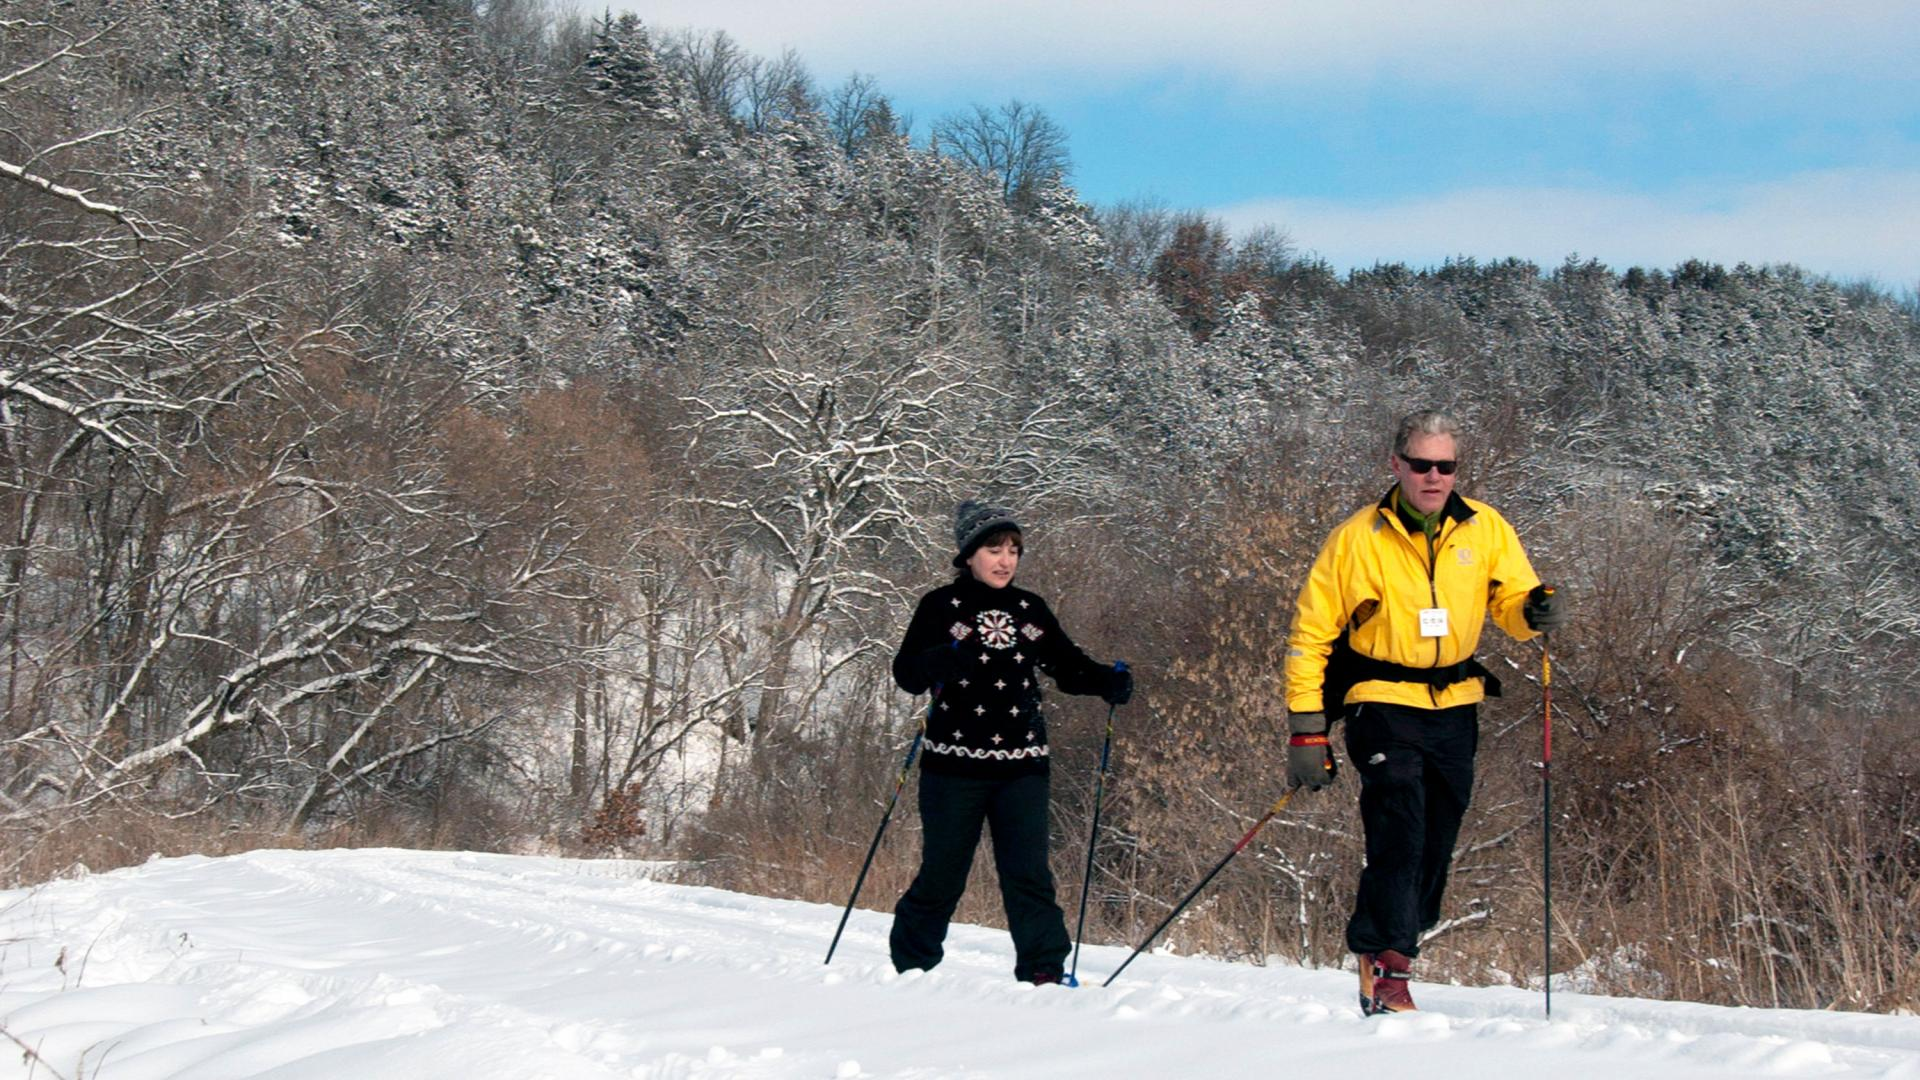 Couple cross country skiing on the Root River Trail in the Lanesboro area